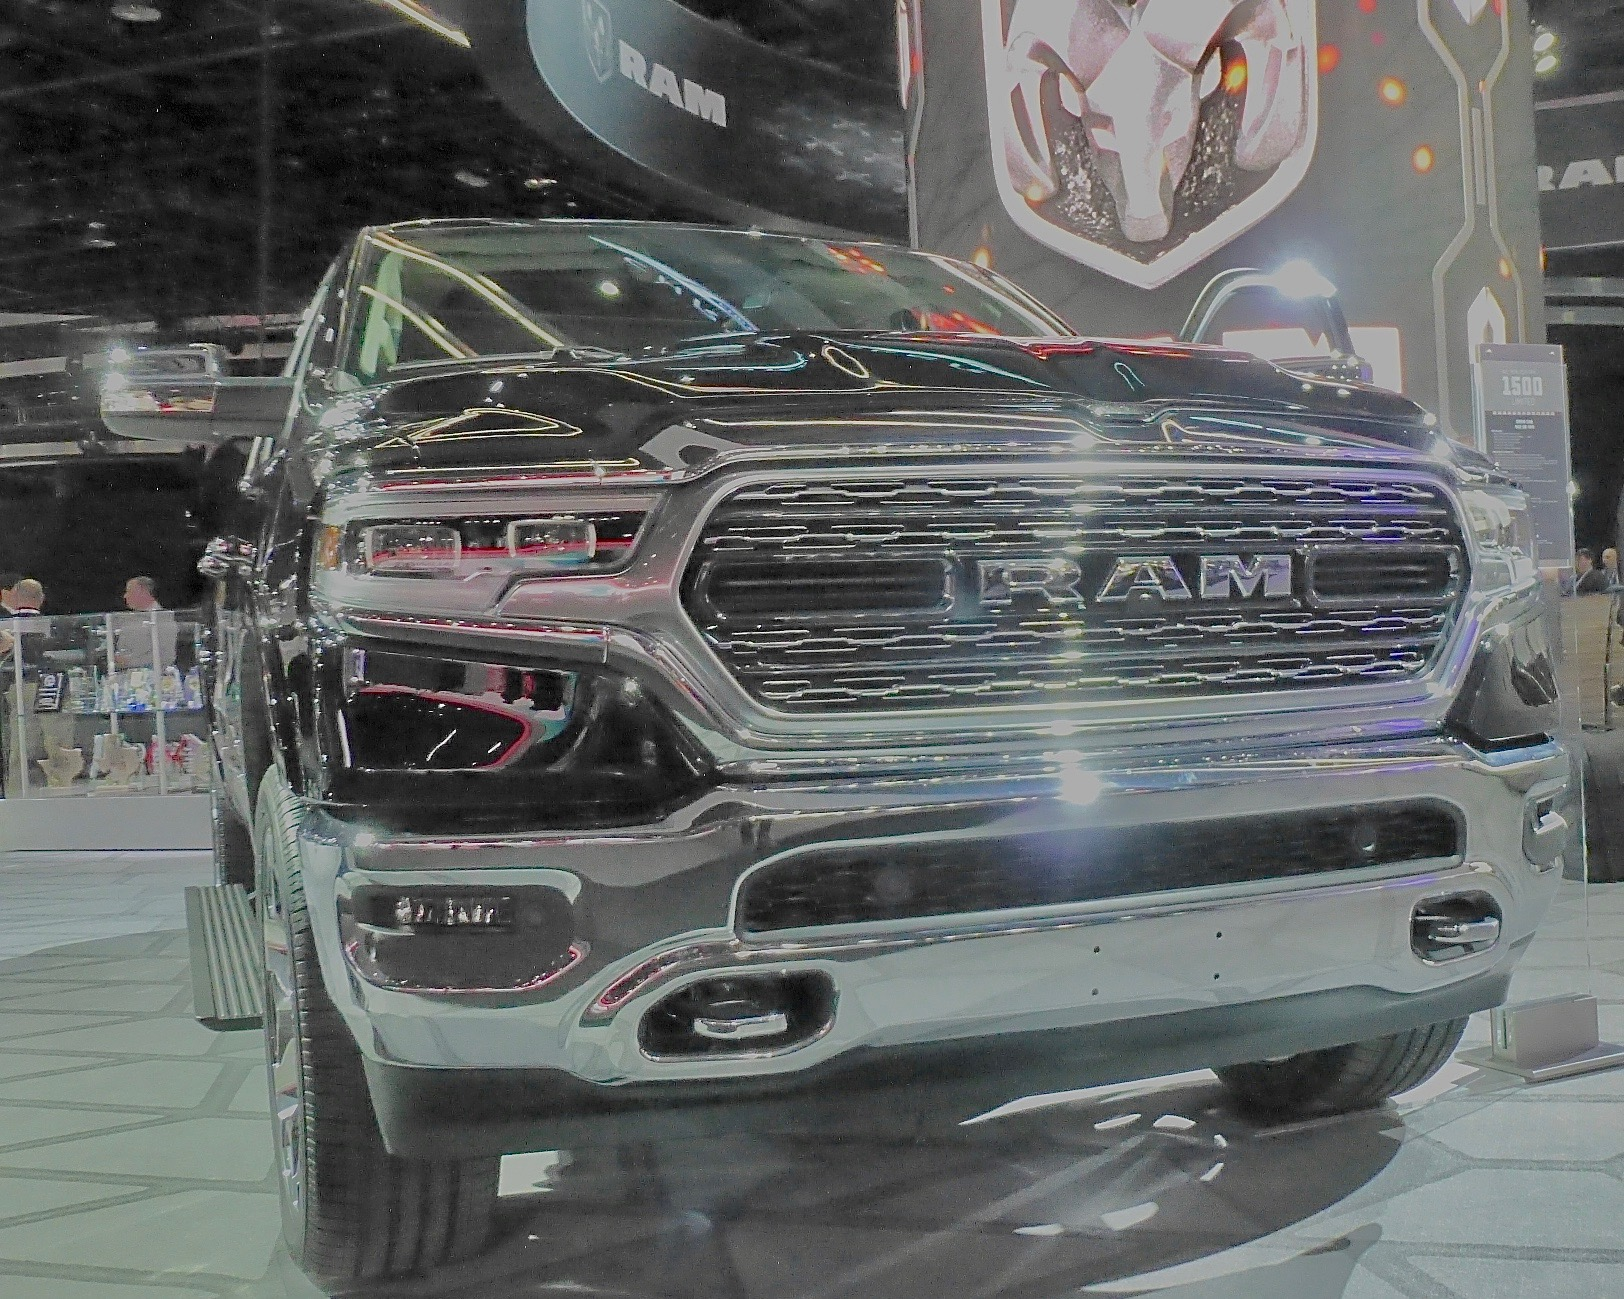 Unveiling of 2019 Ram 1500 with much more refined look earned Best in Show from Cars.com.